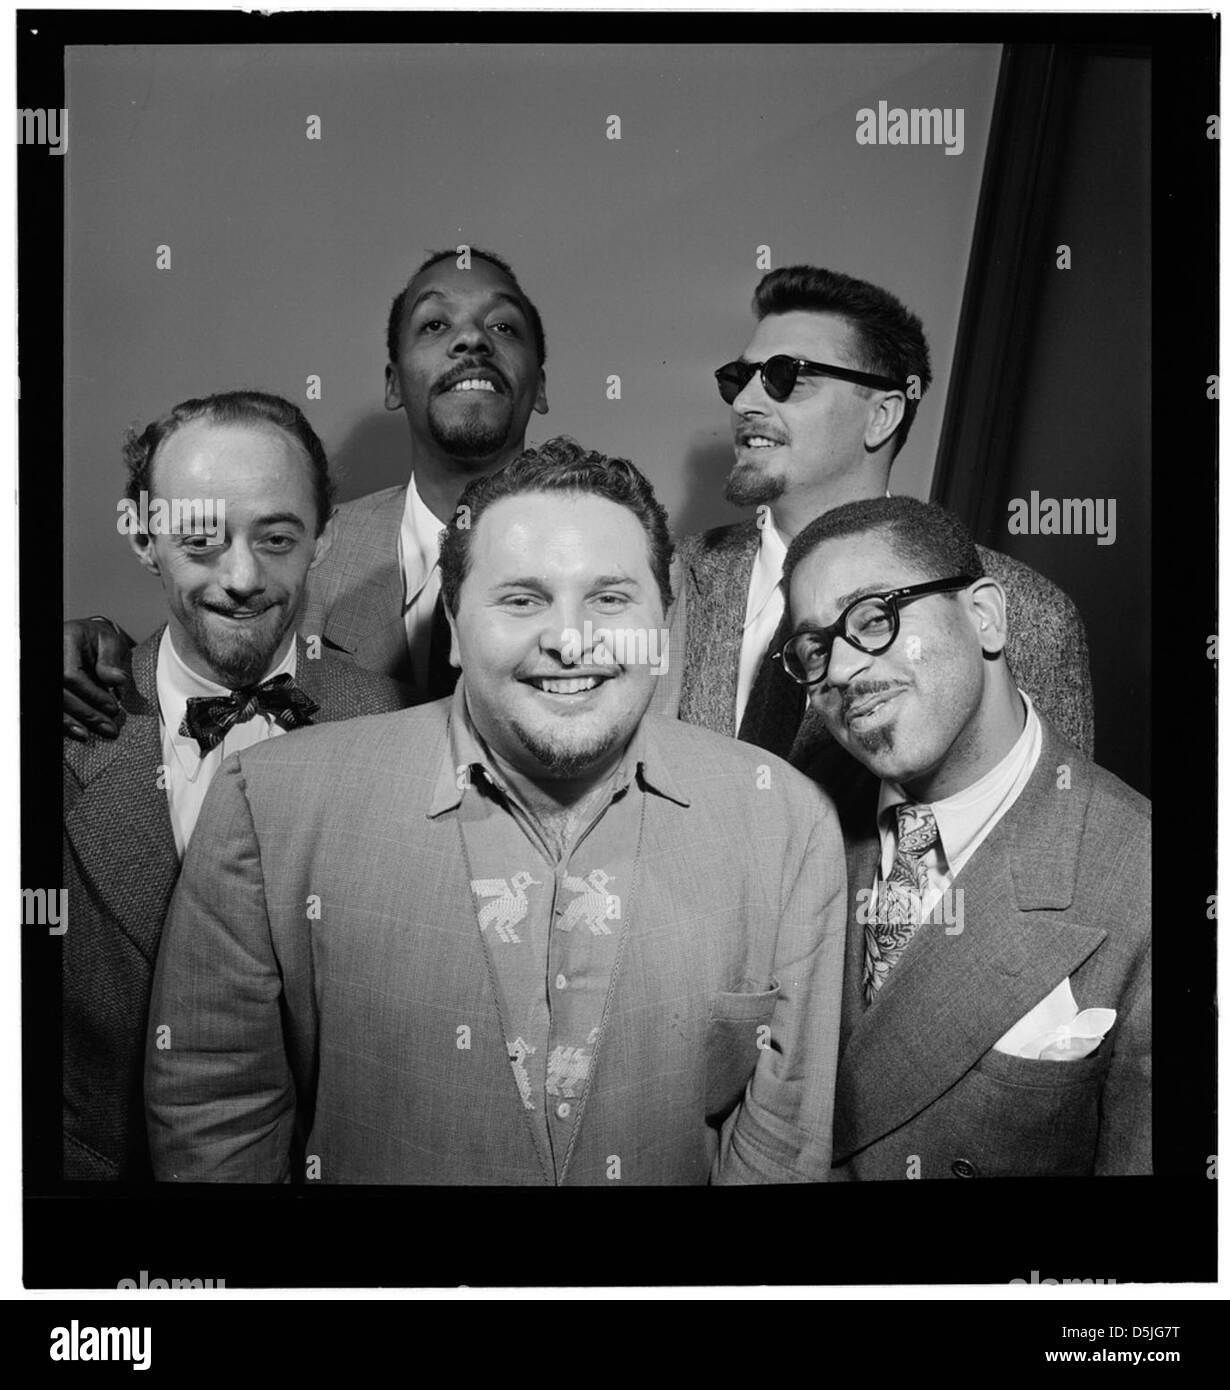 [Retrato de dave lambert, John Simmons, chubby JACKSON, GEORGE handy, y Dizzy Gillespie, William P. gottlieb's Imagen De Stock